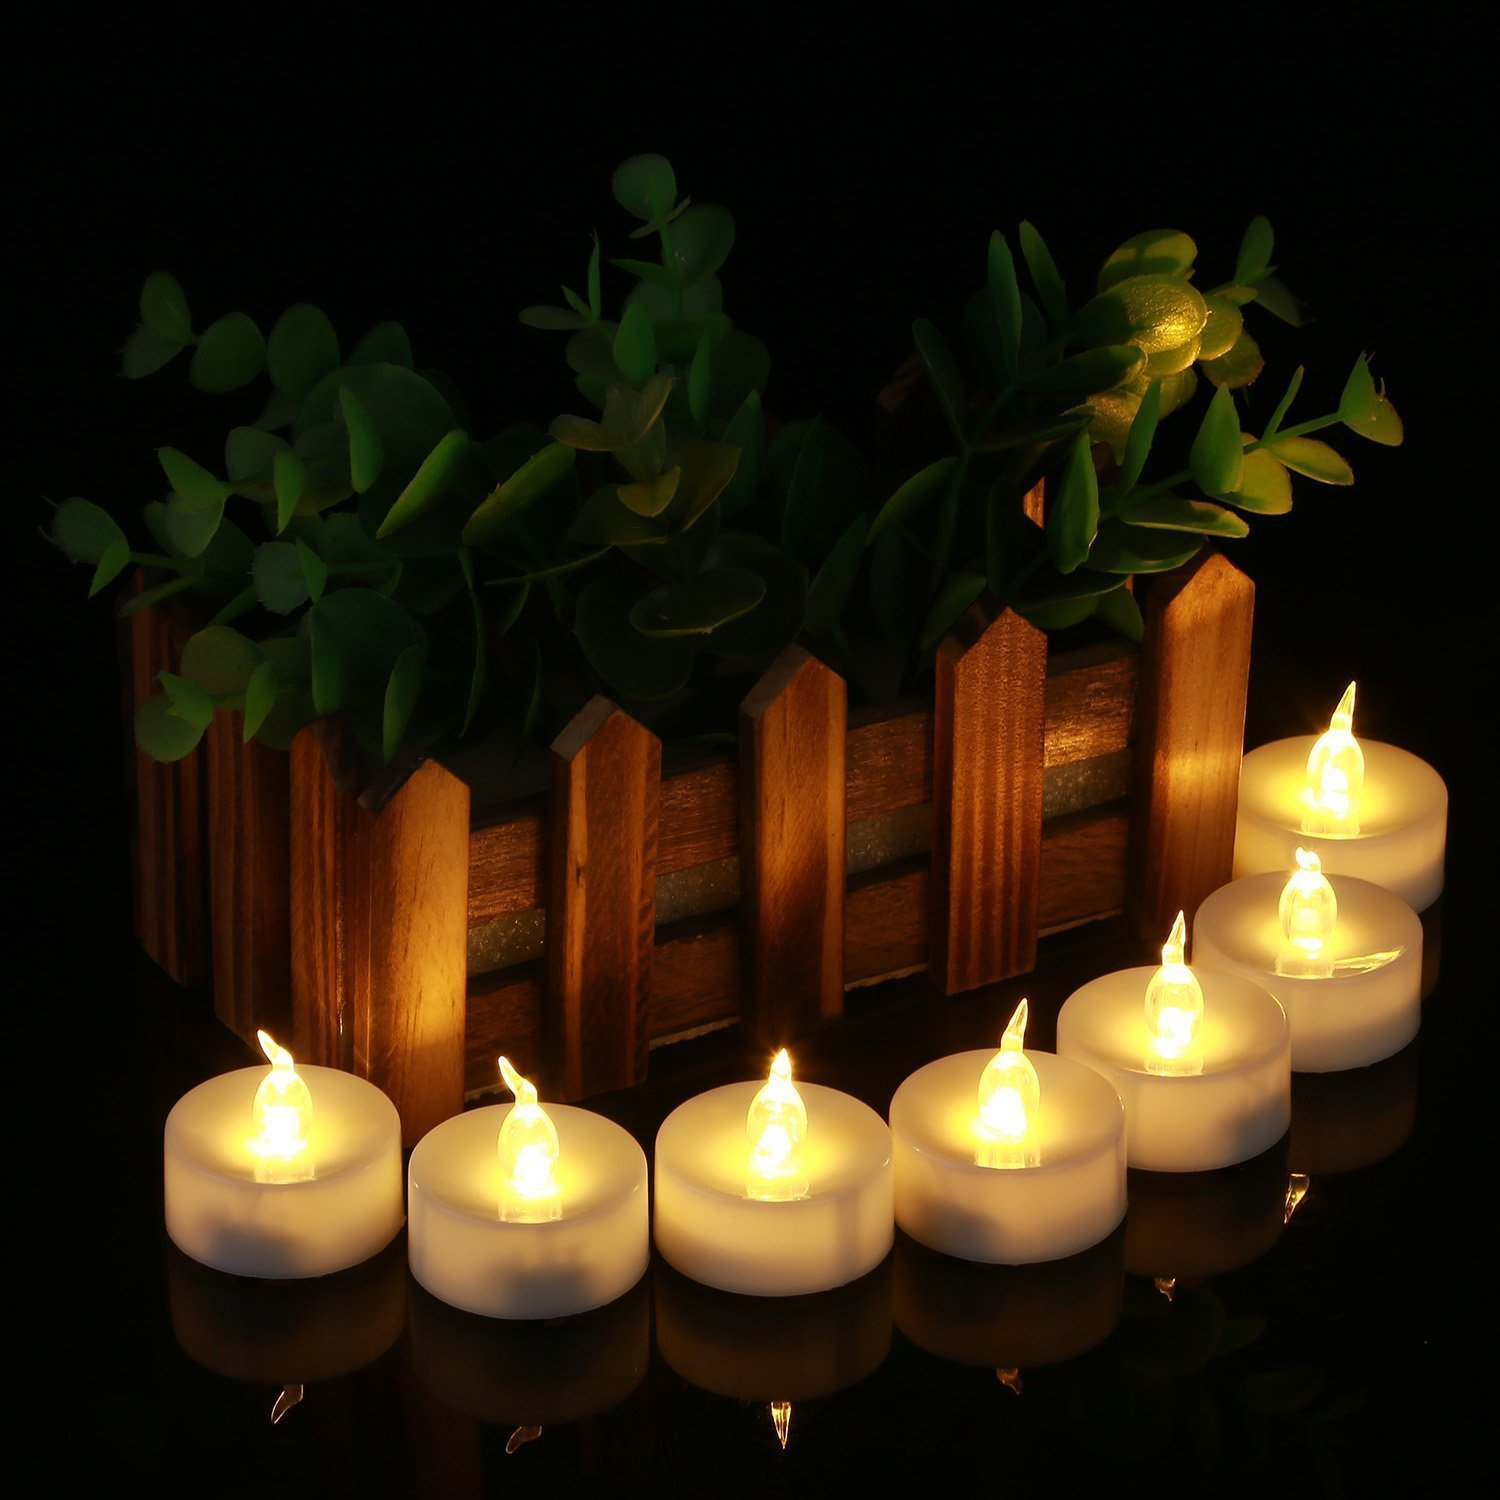 Homemory 24 Pack Warm White Battery LED Tea Lights Party Gift Global Selection HMCLTLNBS24 Wedding Dia 1.4/'/' Electric Fake Candle for Votive Dining Room Flameless Flickering Tealight Candle Table